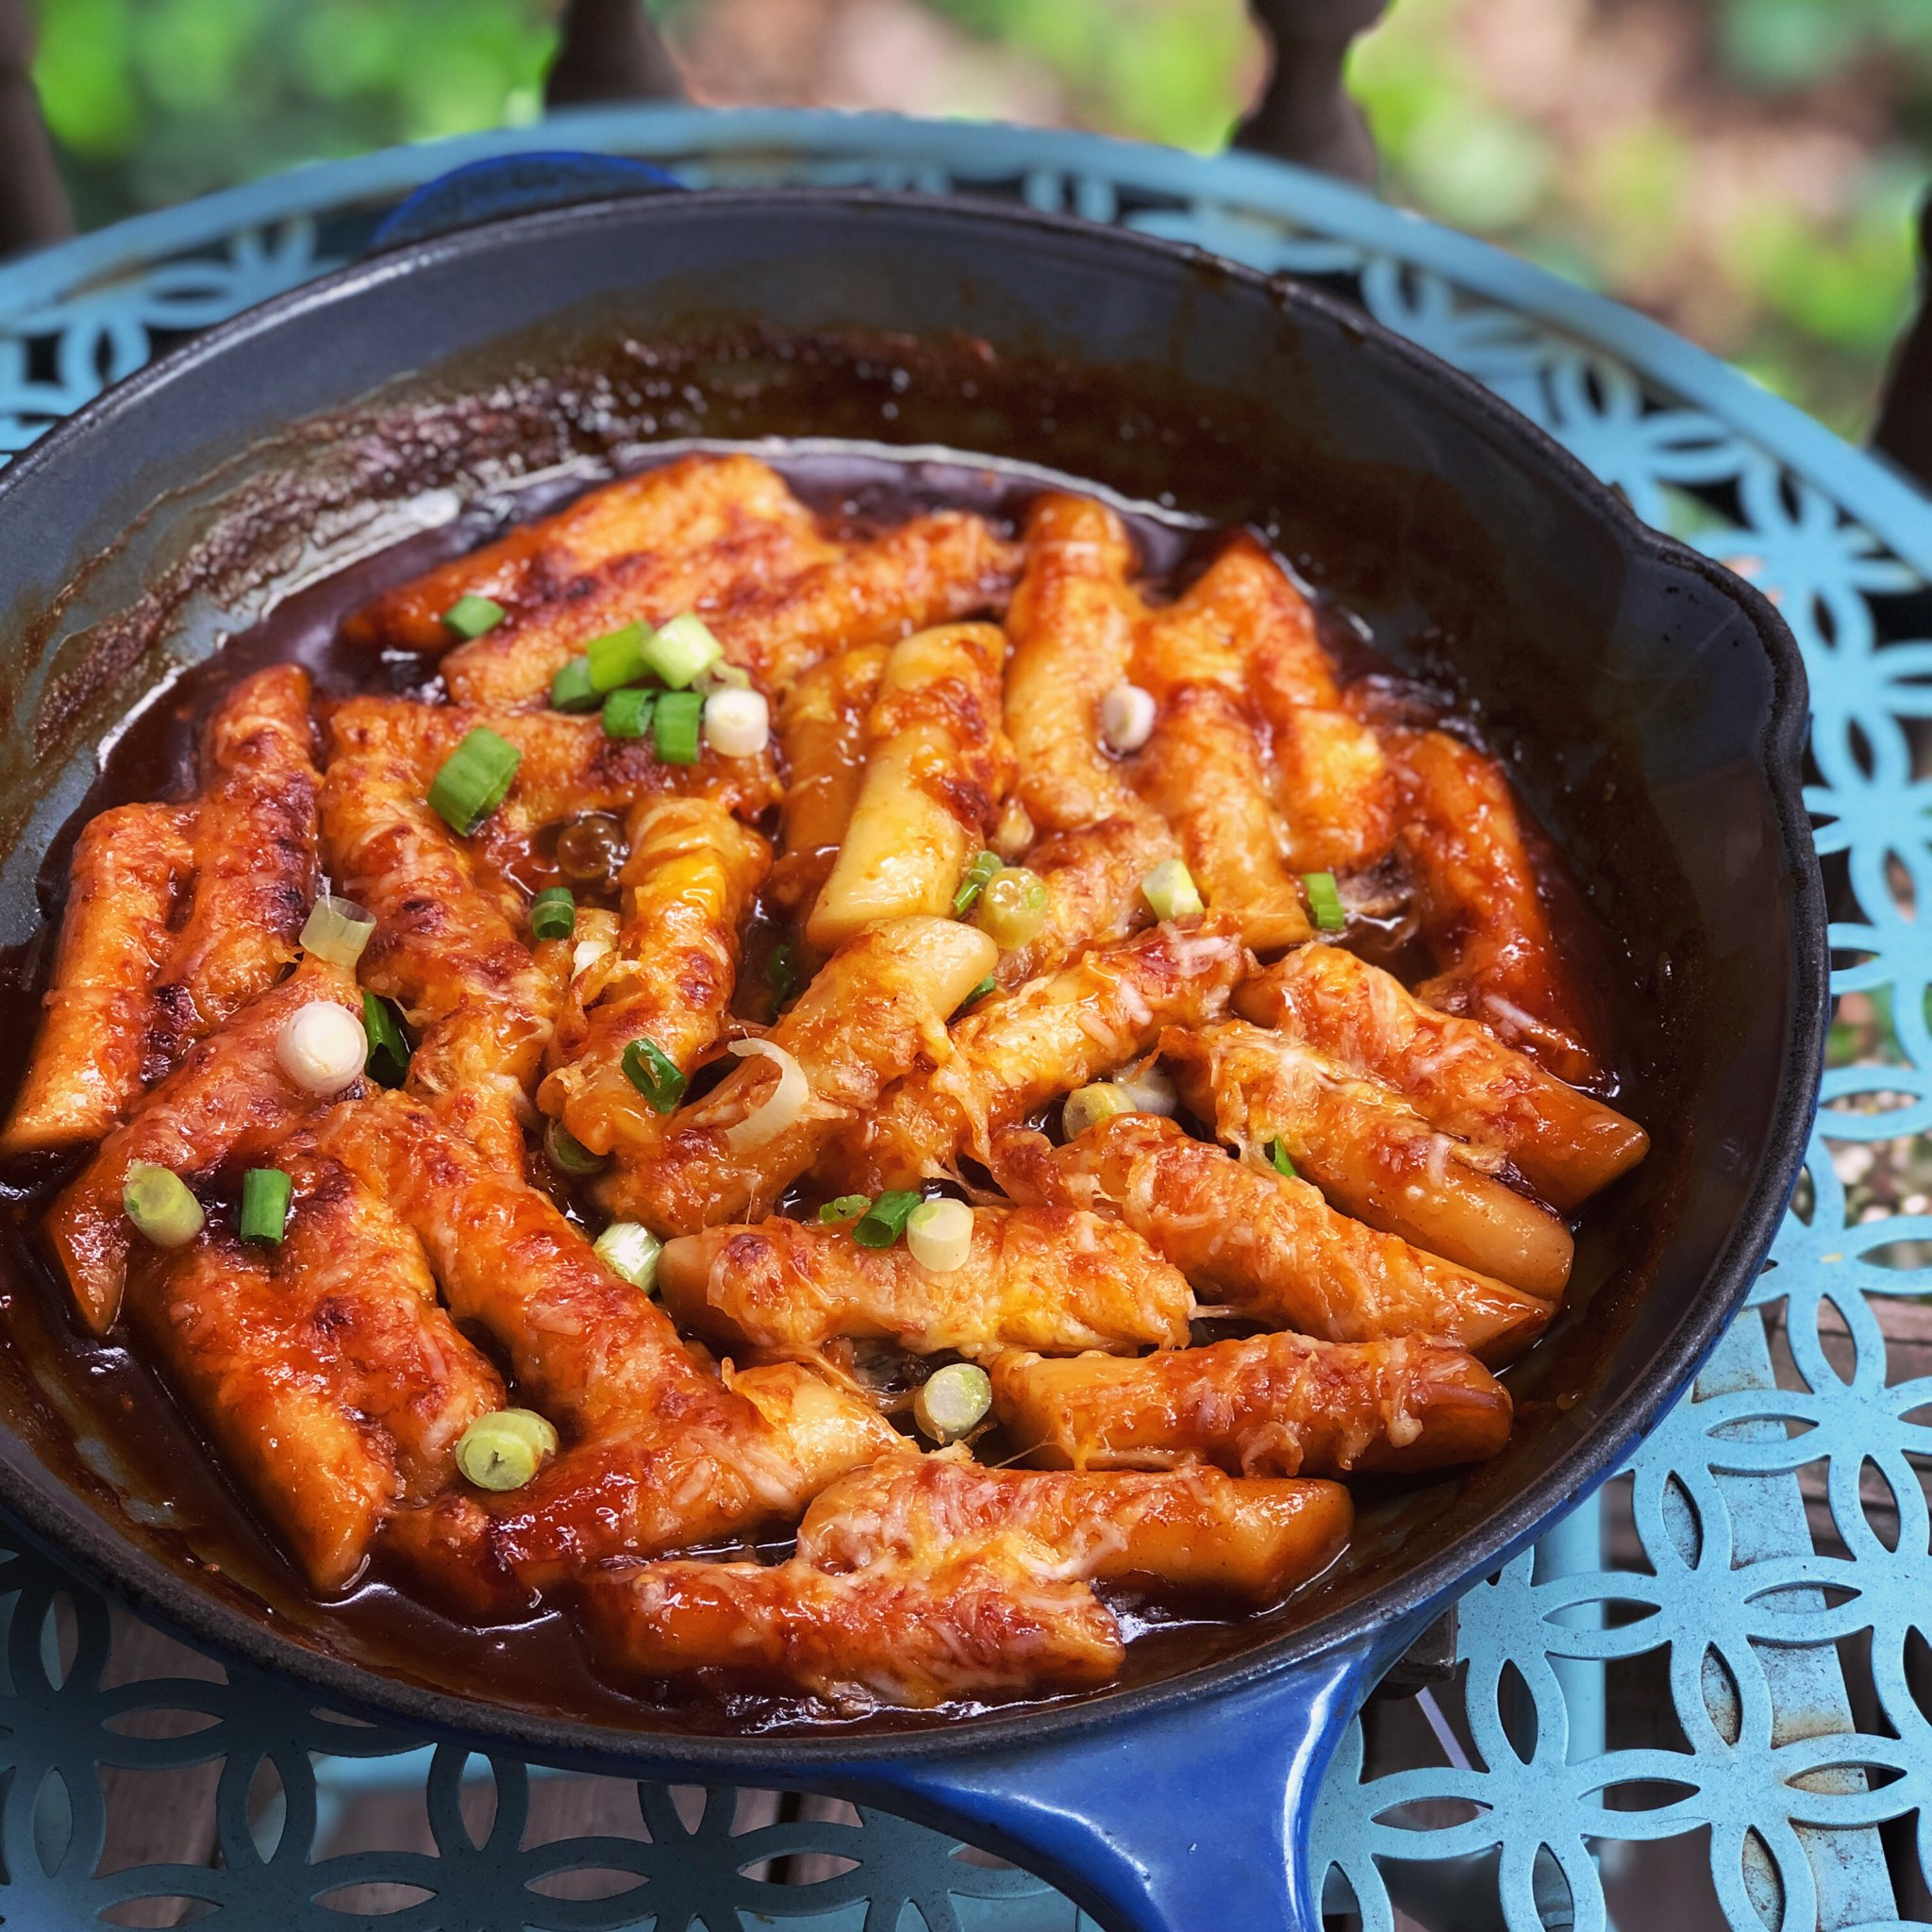 Tteokbokki Korean Spicy Rice Cakes Recipe Allrecipes